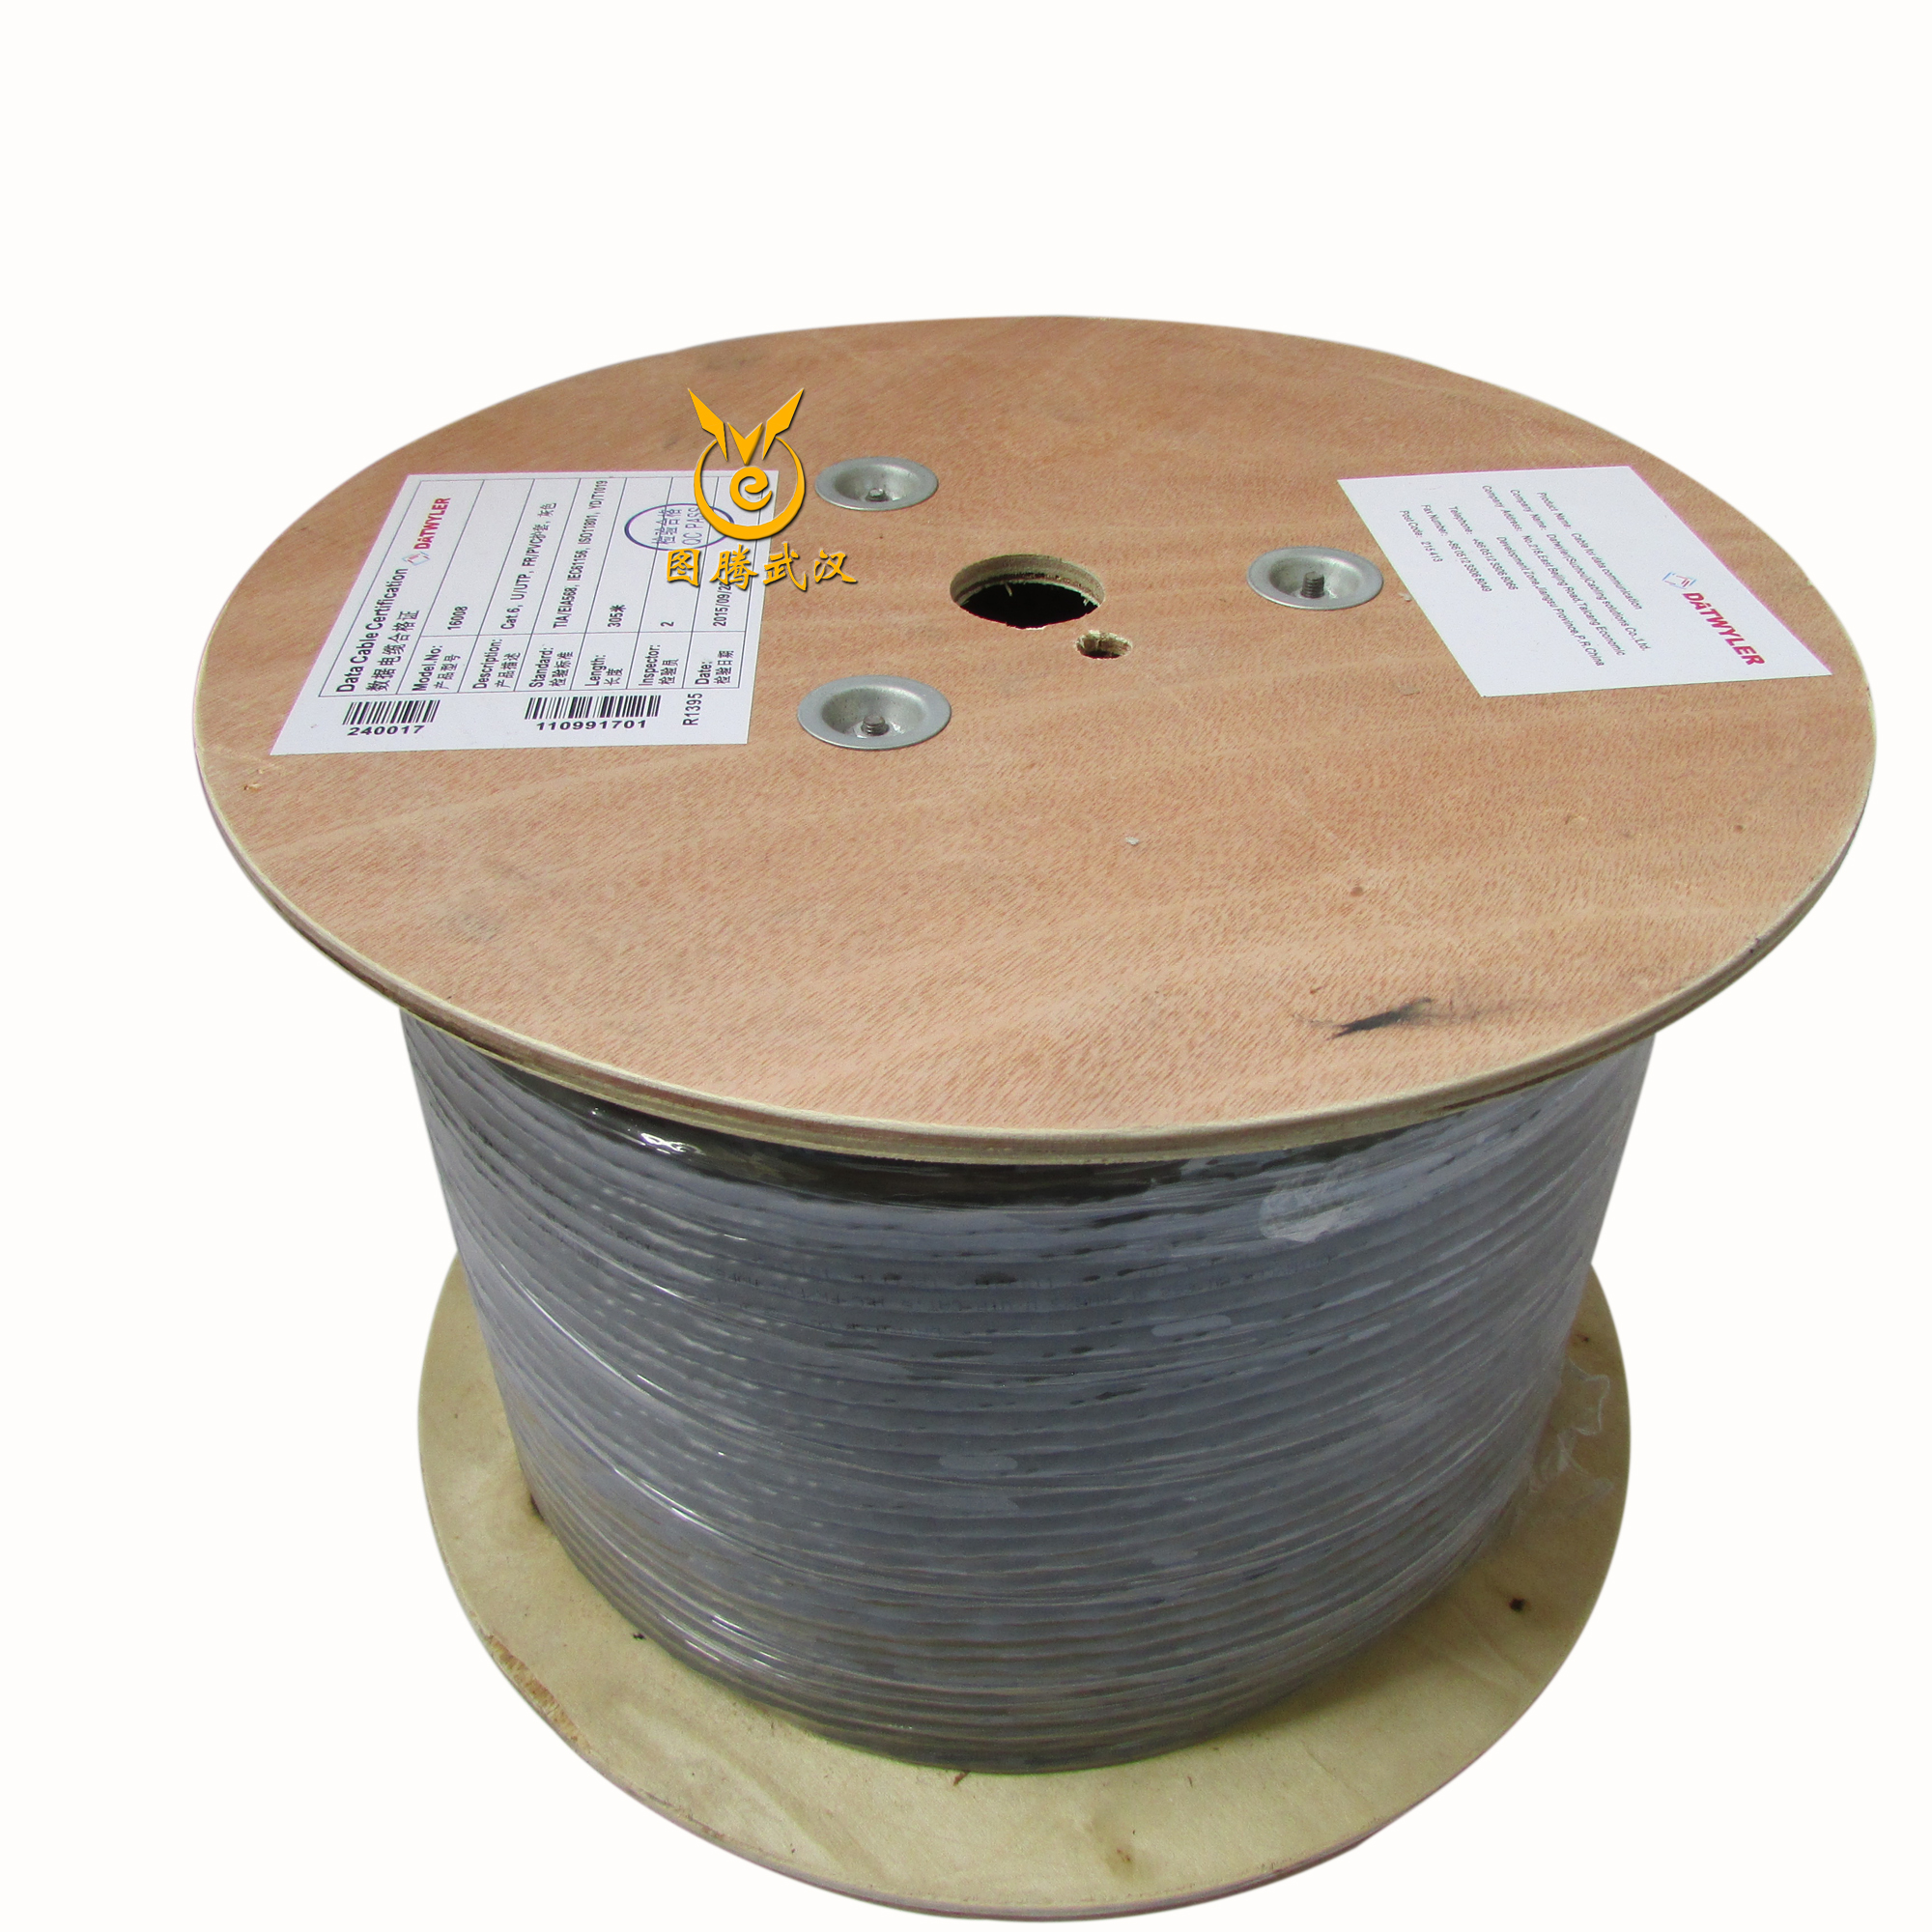 hight resolution of category wire wire class productname dtwler 0 58 oxygen free copper gigabit category 6 cable datwyler16008 tested 305m cable at newbecca com price 126 00